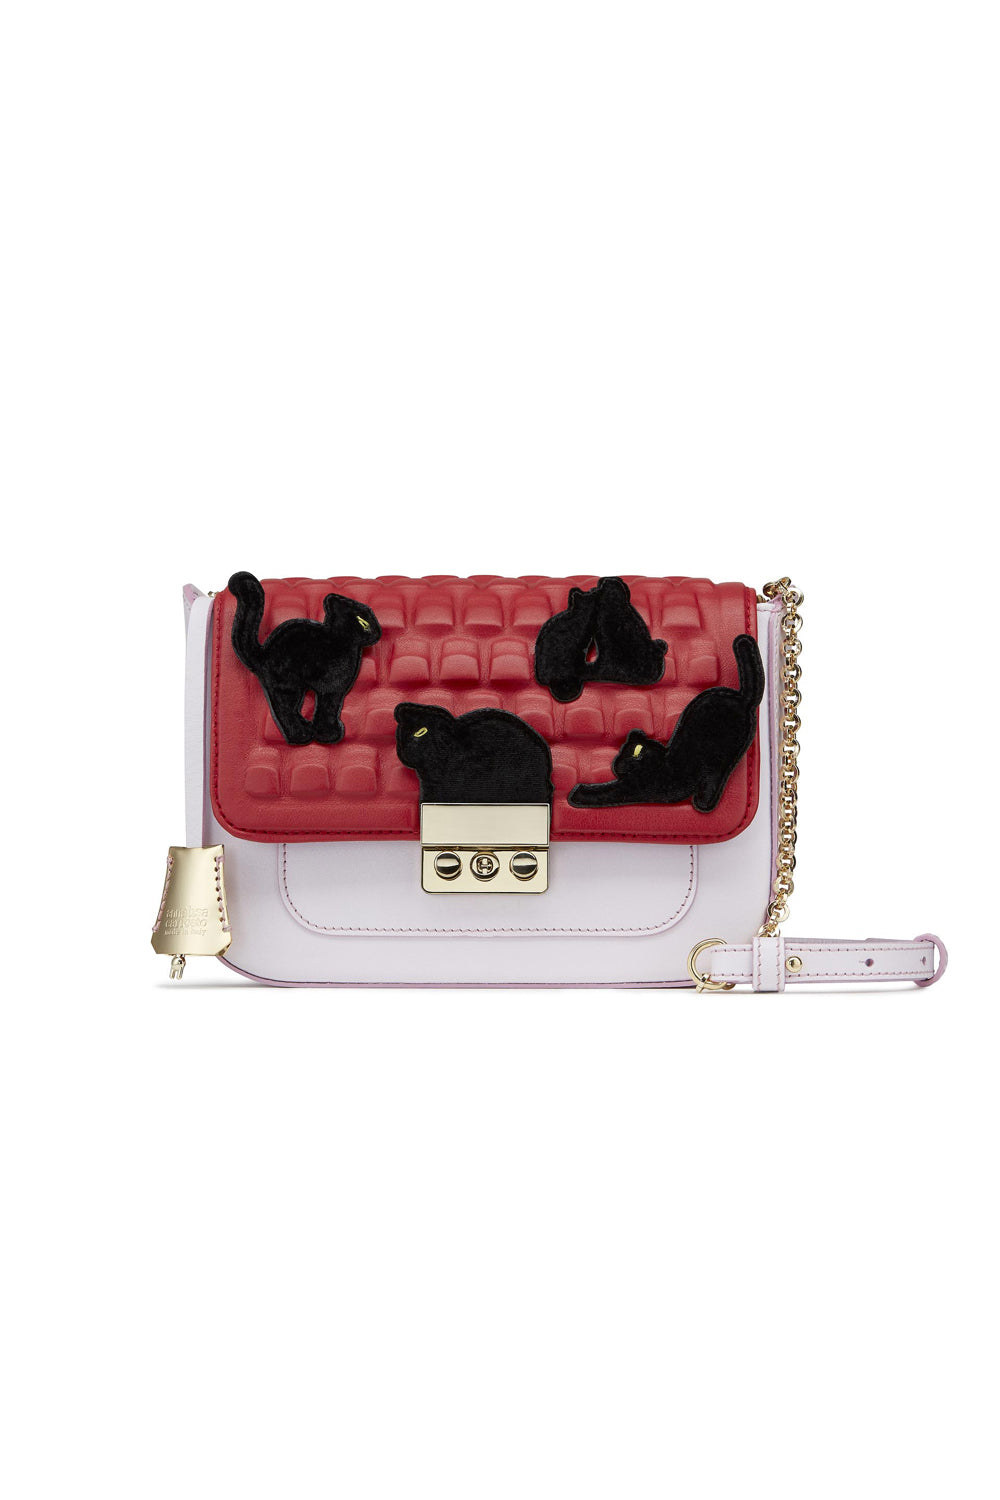 Kittens Leather Mini Bag - The Bobby Boga